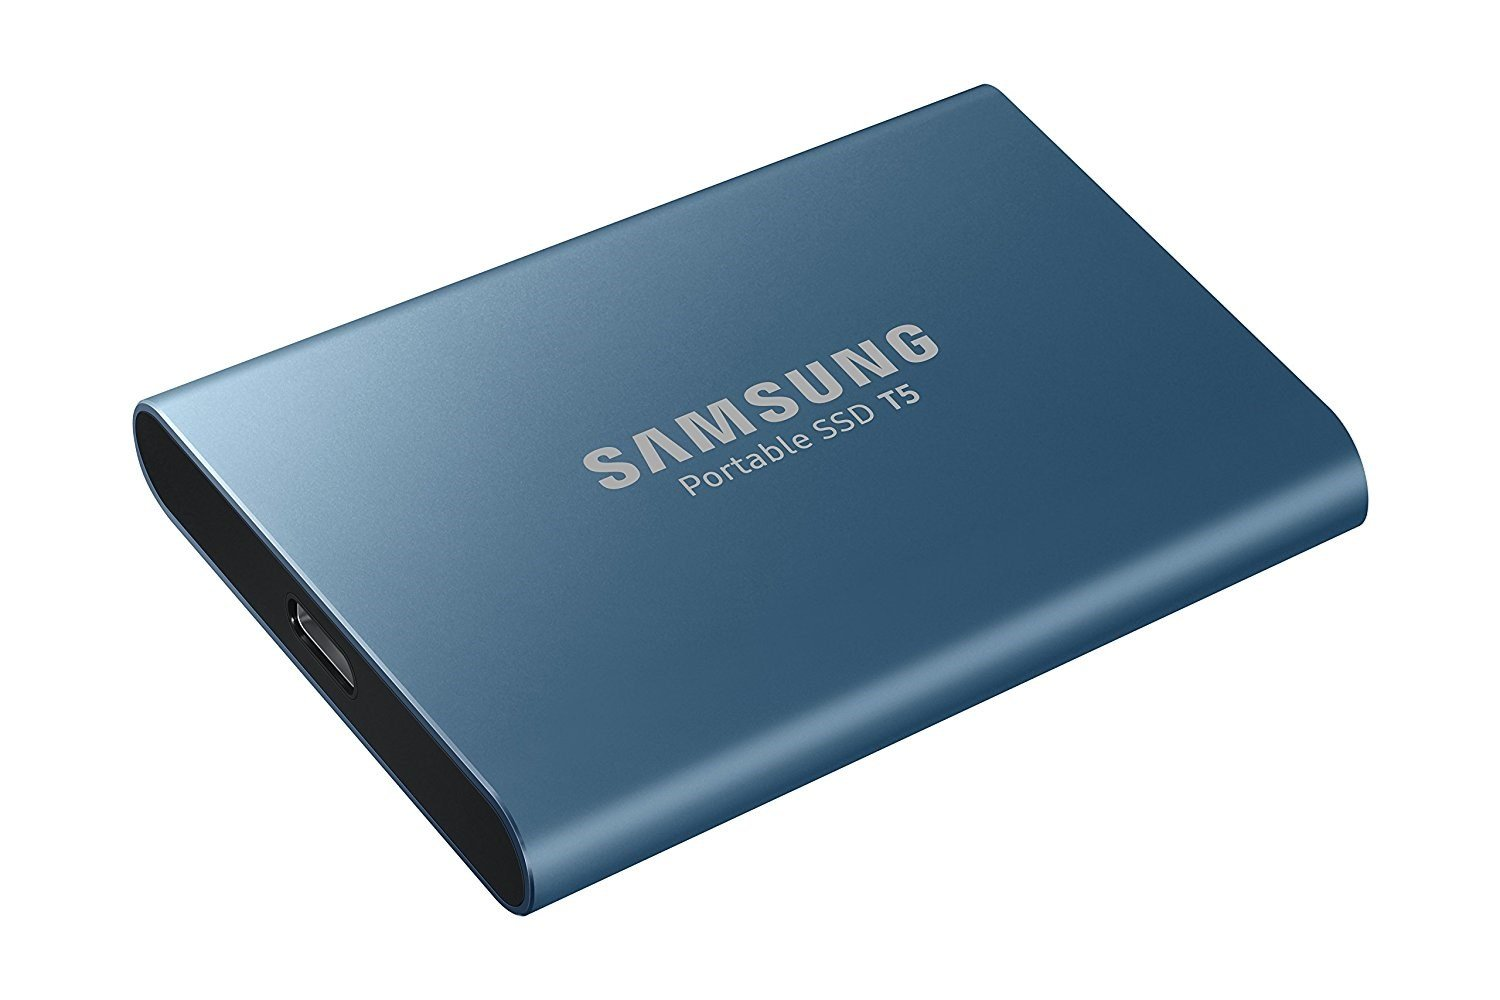 an External SSD shouldn't be used with PS4 before upgrading to an internal SSD